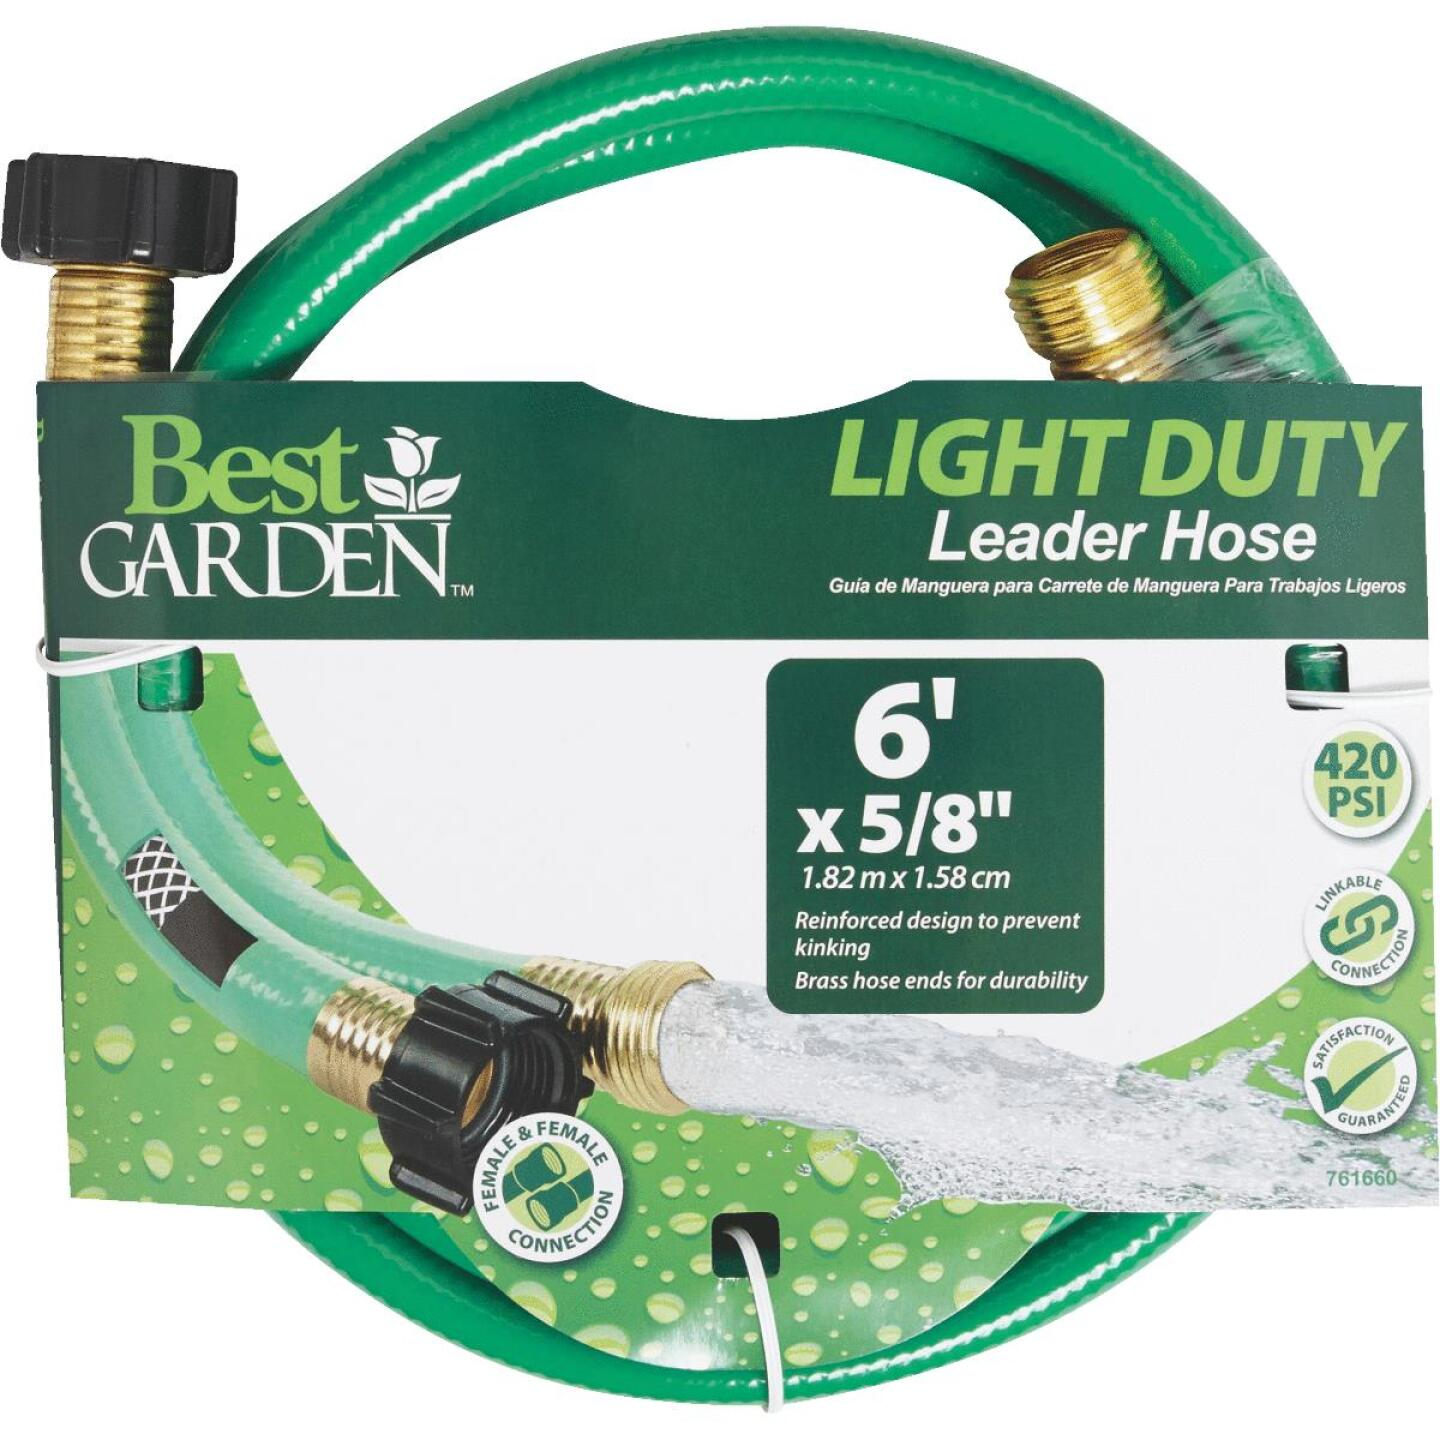 Best Garden 5/8 In. Dia. x 6 Ft. L. Leader Hose with Male & Female Couplings Image 1